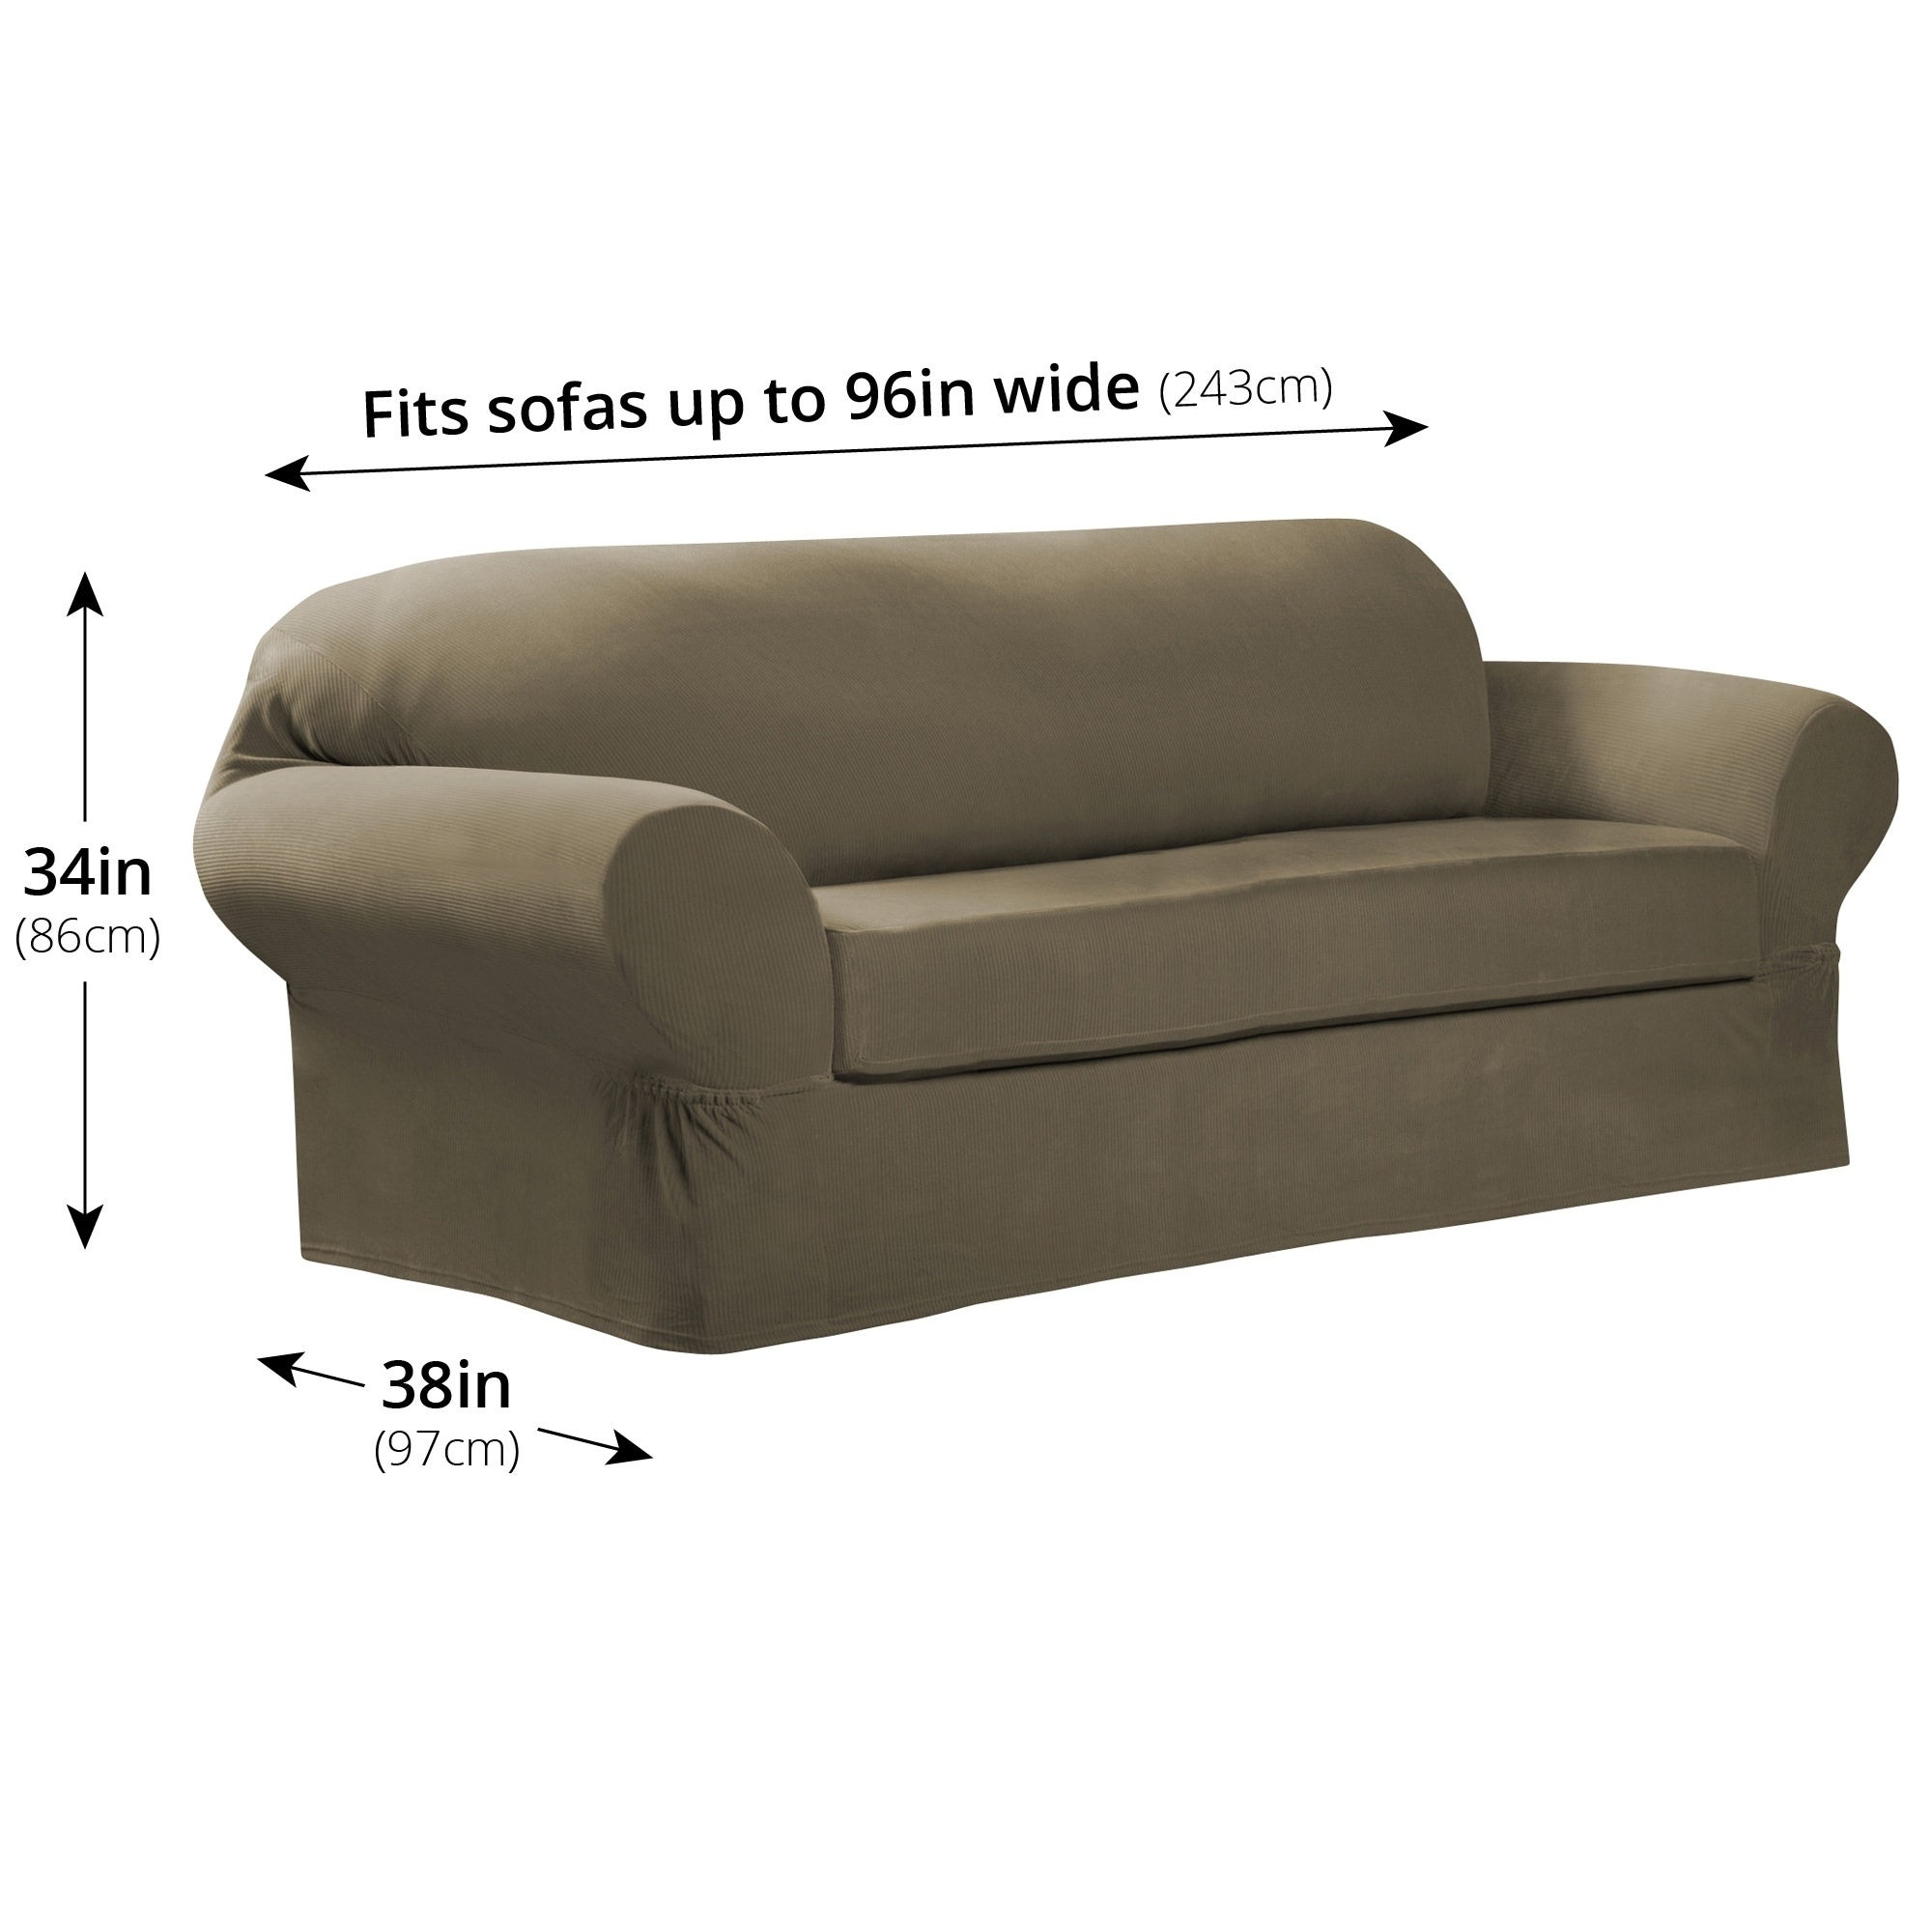 Maytex Collin 2 Piece Sofa Slipcover 74 96 Wide 34 High 38 Deep Free Shipping Today 4129079